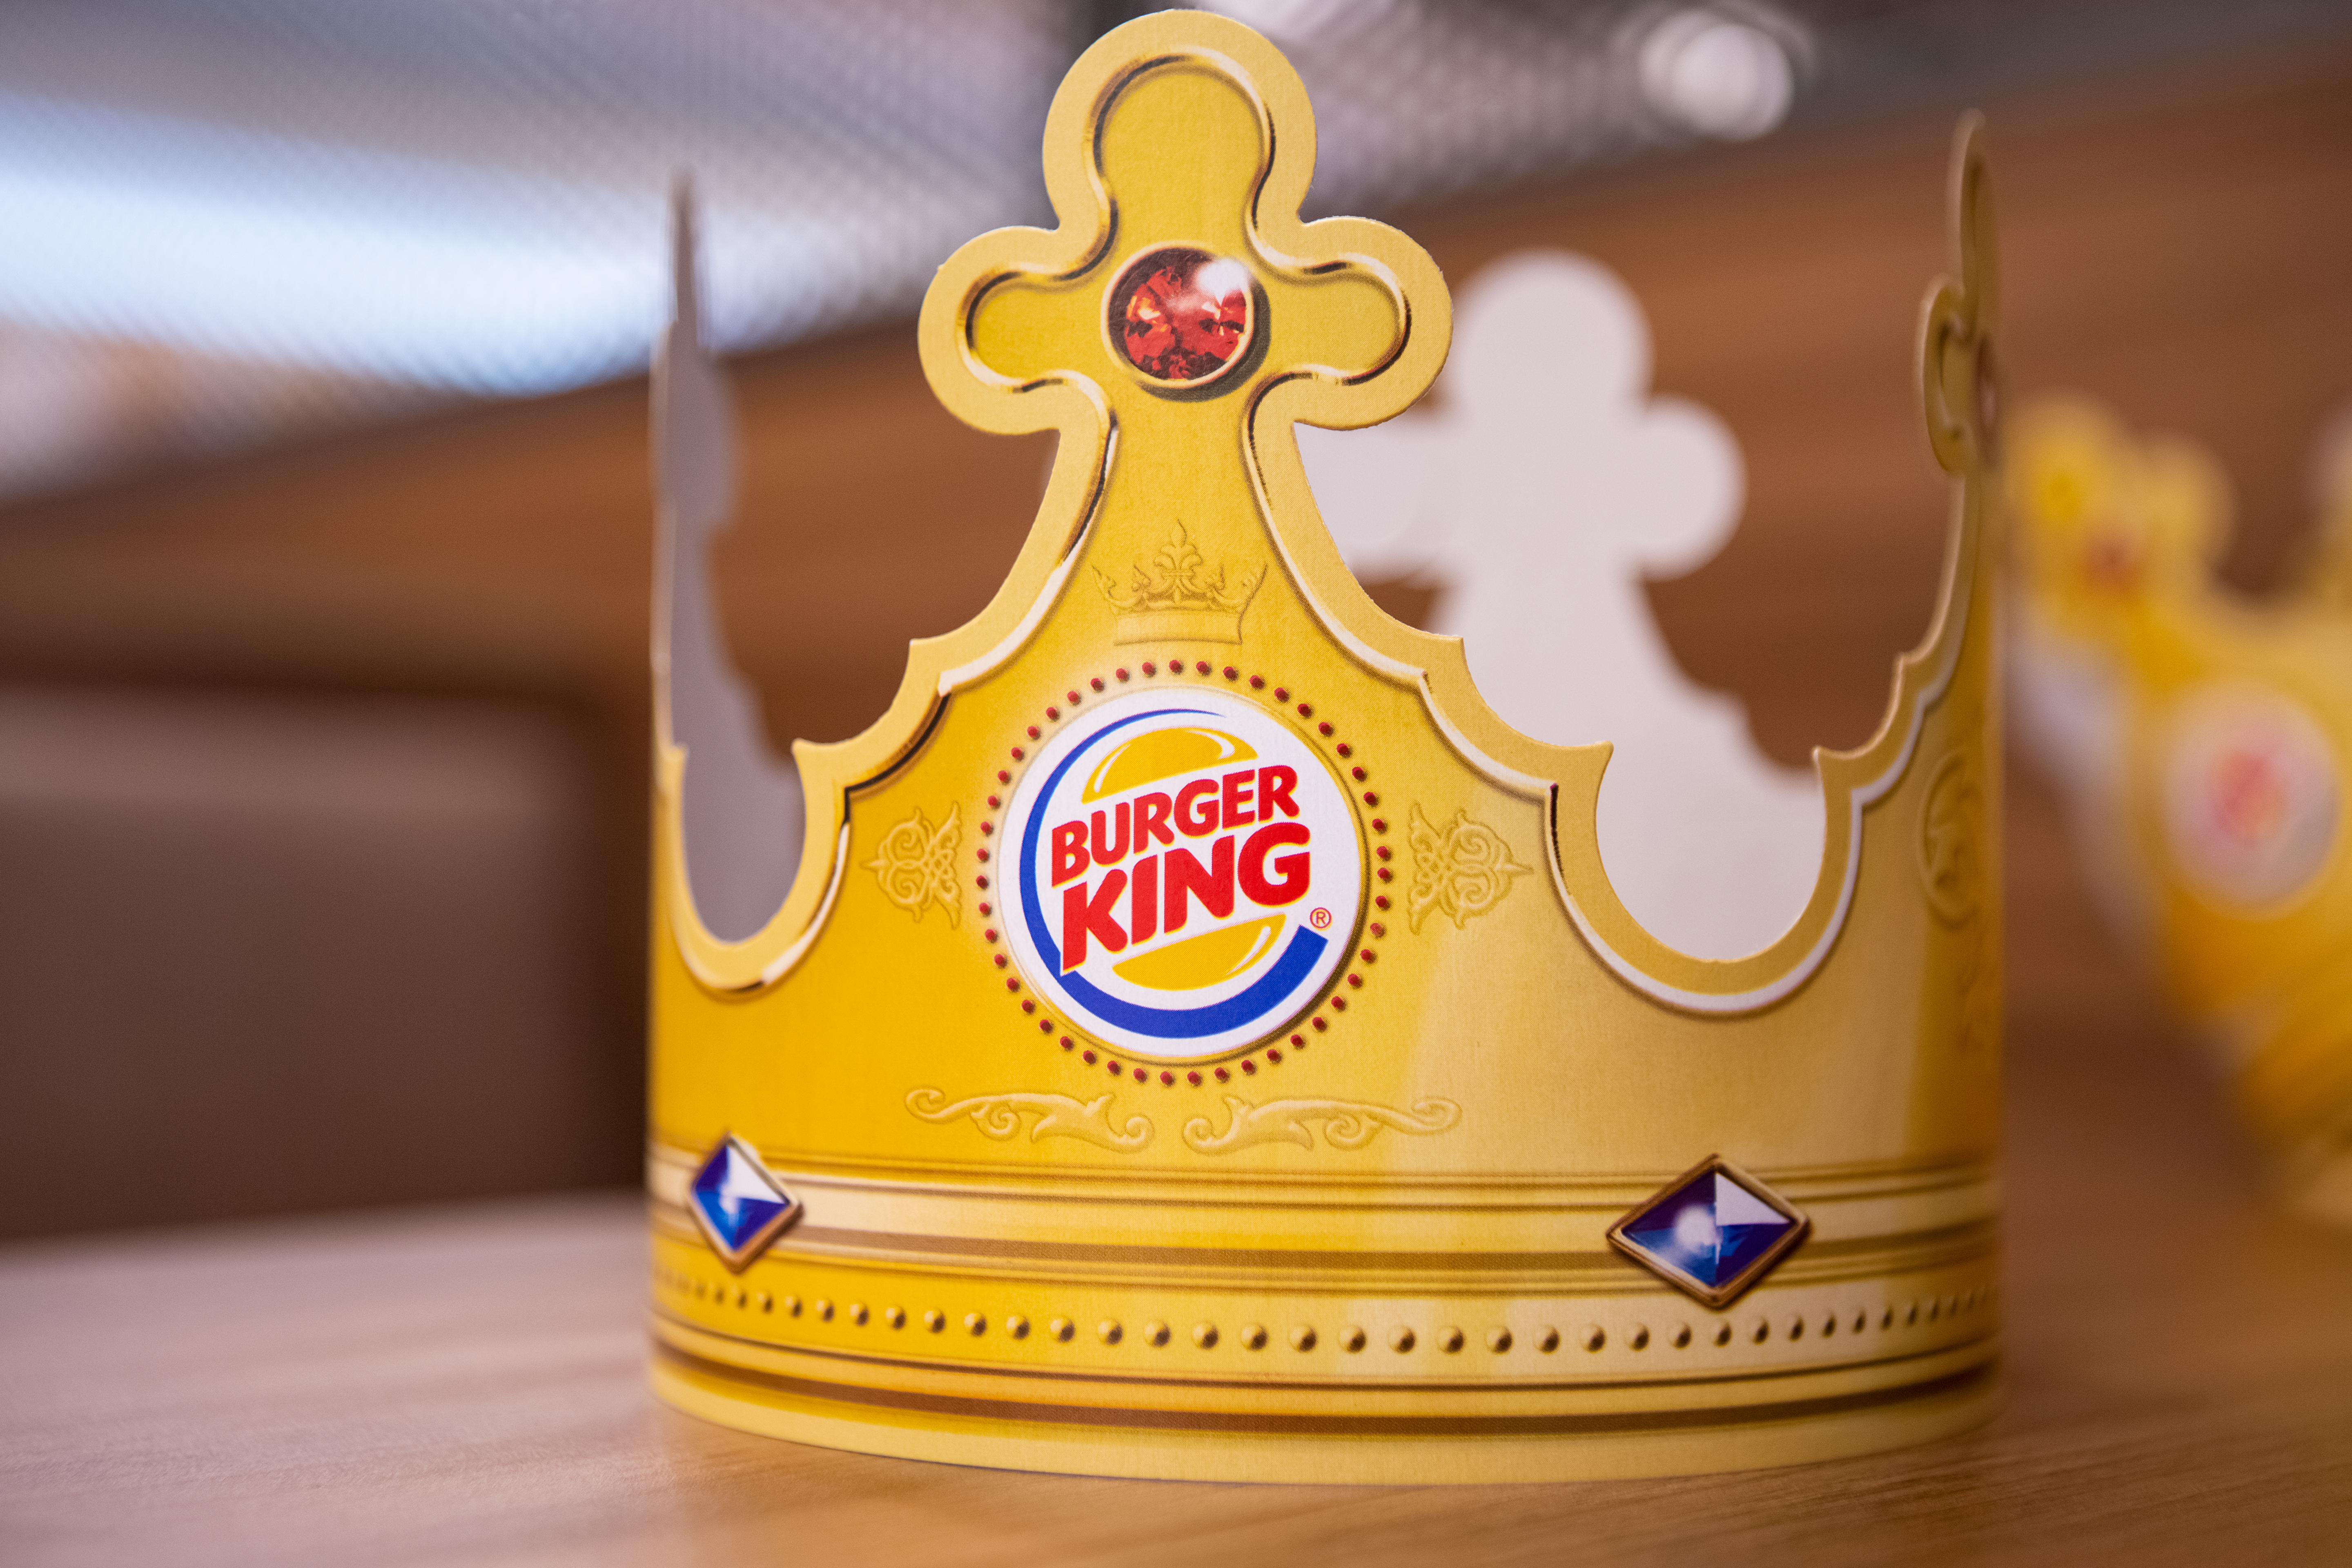 Paper Burger King Crown On Wooden Table Surface On Interior Fast Food Restaurant Background